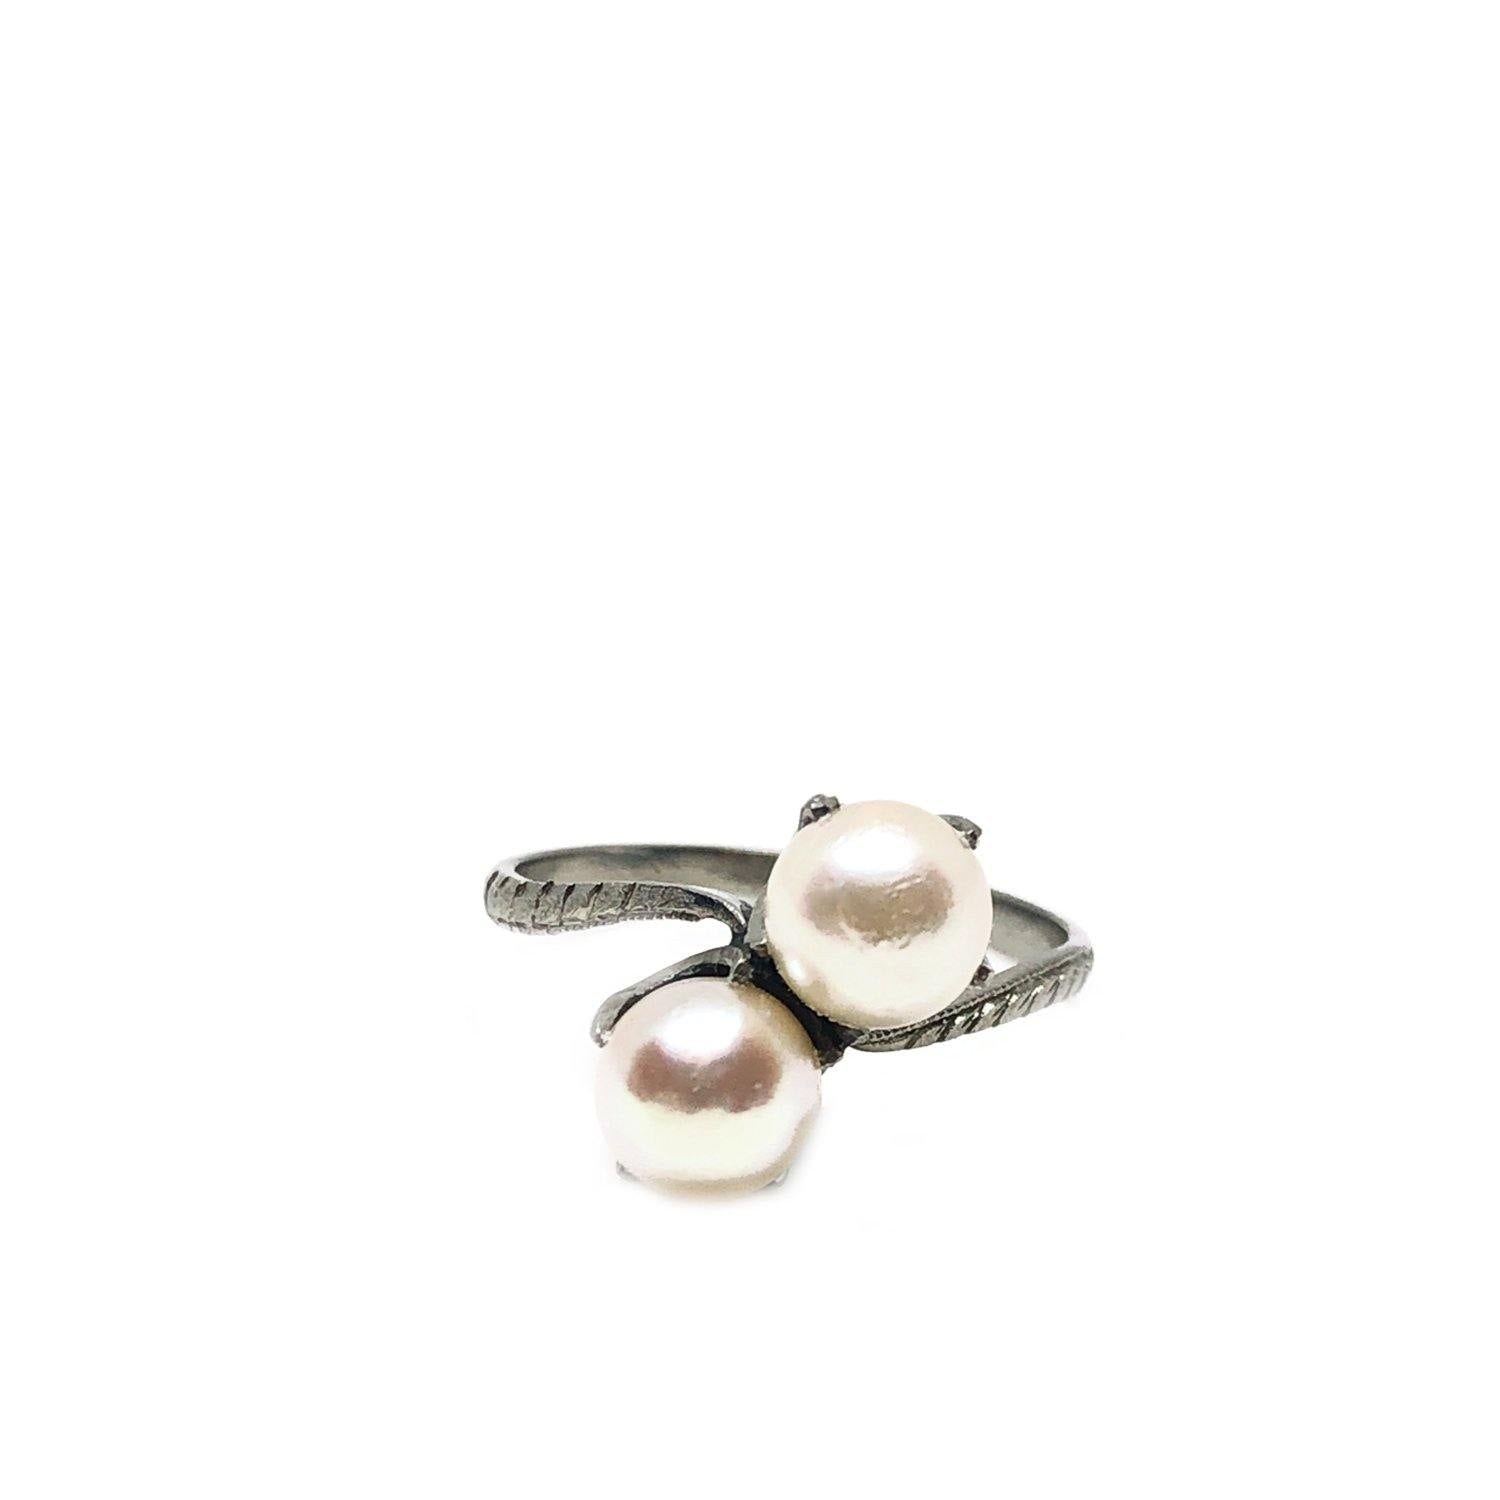 Claw Prong Bypass Japanese Saltwater Cultured Akoya Pearl Ring- Sterling Silver Sz 6 1/2